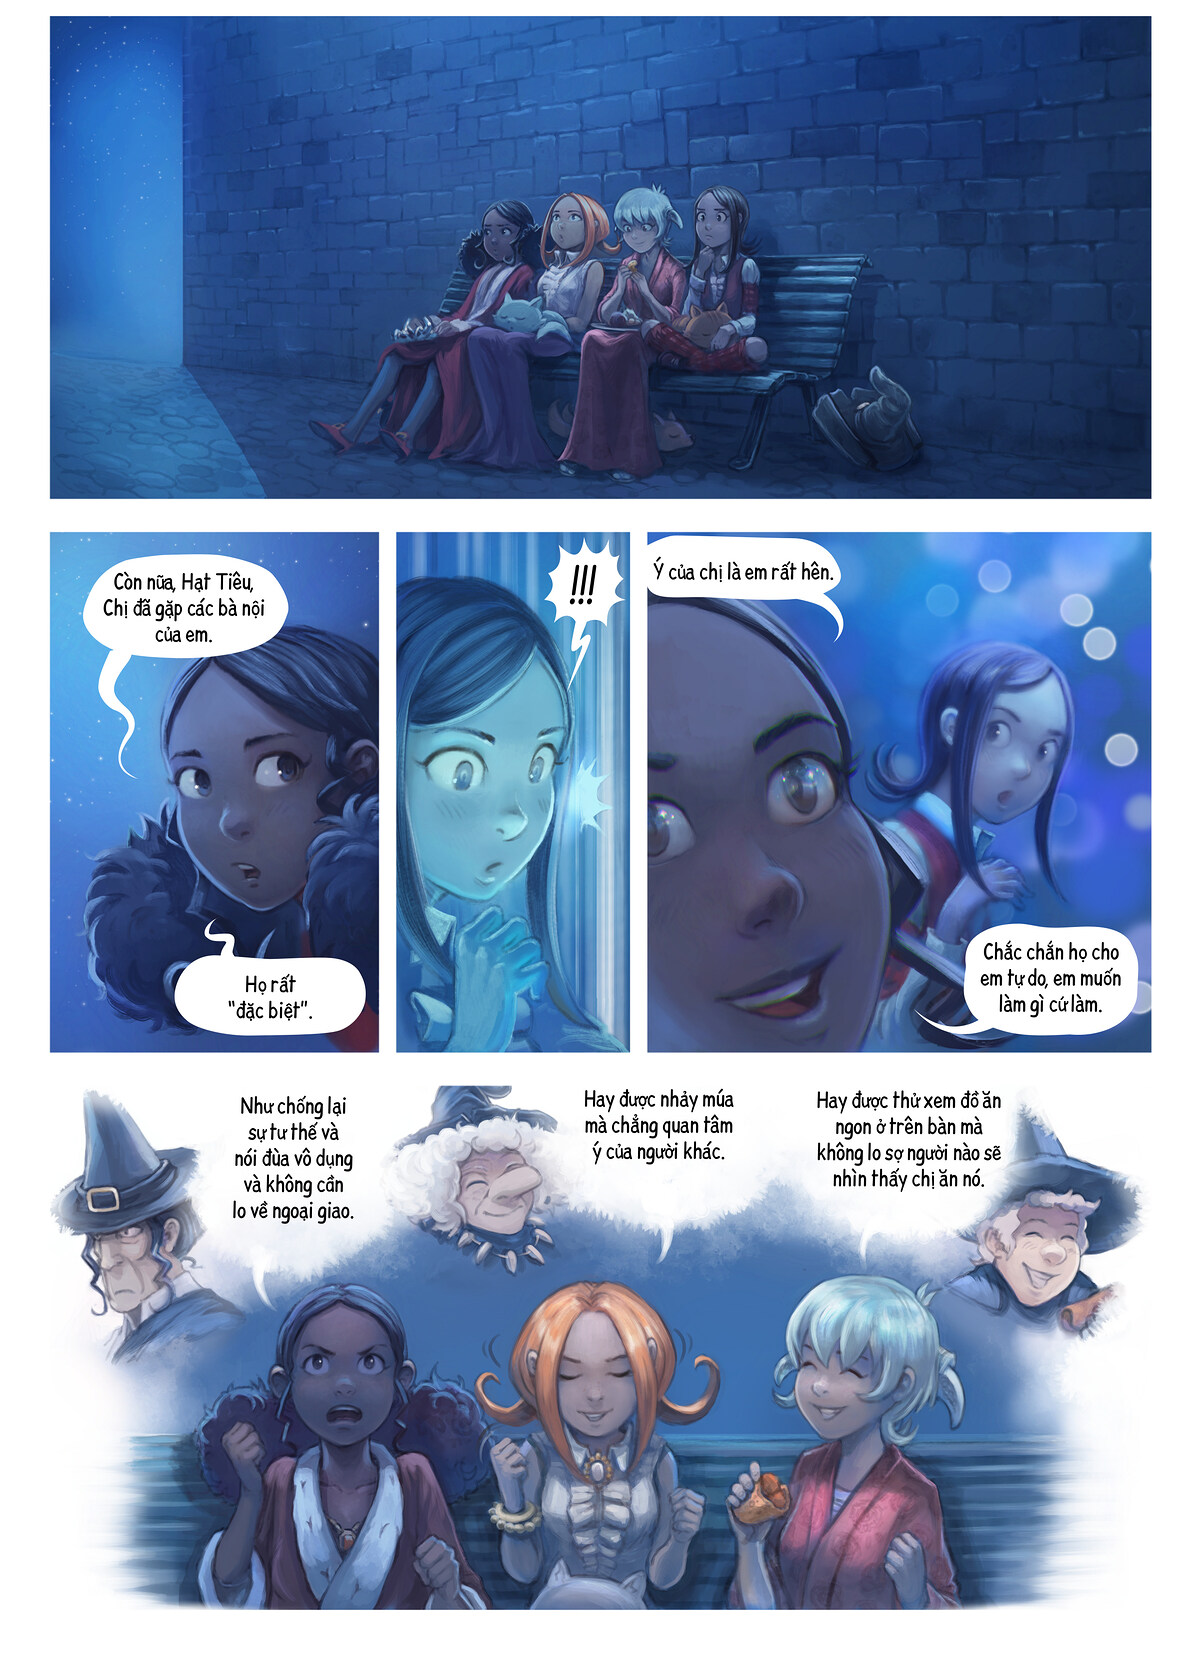 A webcomic page of Pepper&Carrot, Tập 28 [vi], trang 8